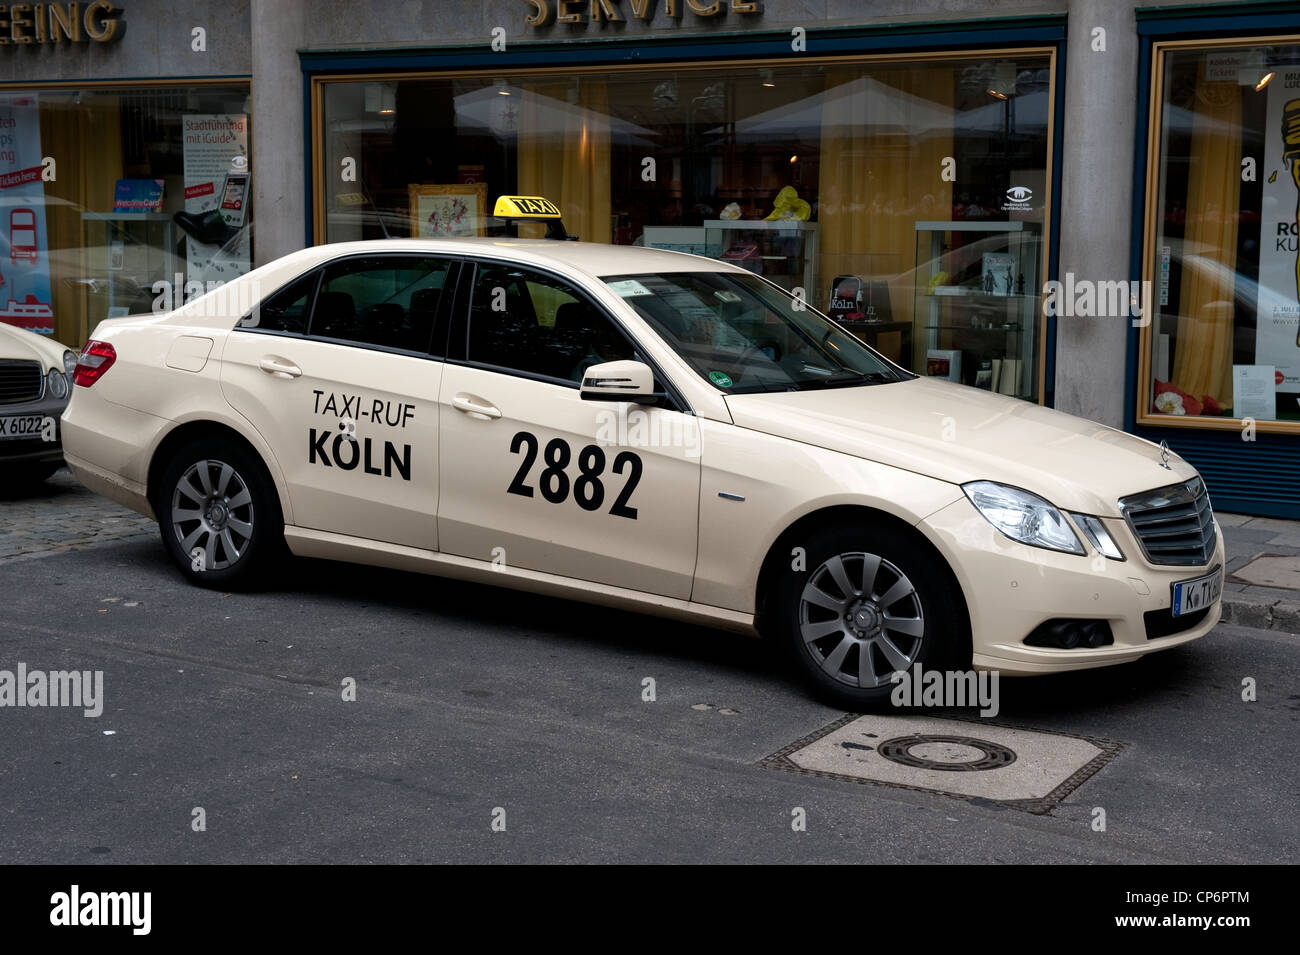 koln 2882 taxi cab mercedes car cologne germany europe eu stock photo royalty free image. Black Bedroom Furniture Sets. Home Design Ideas